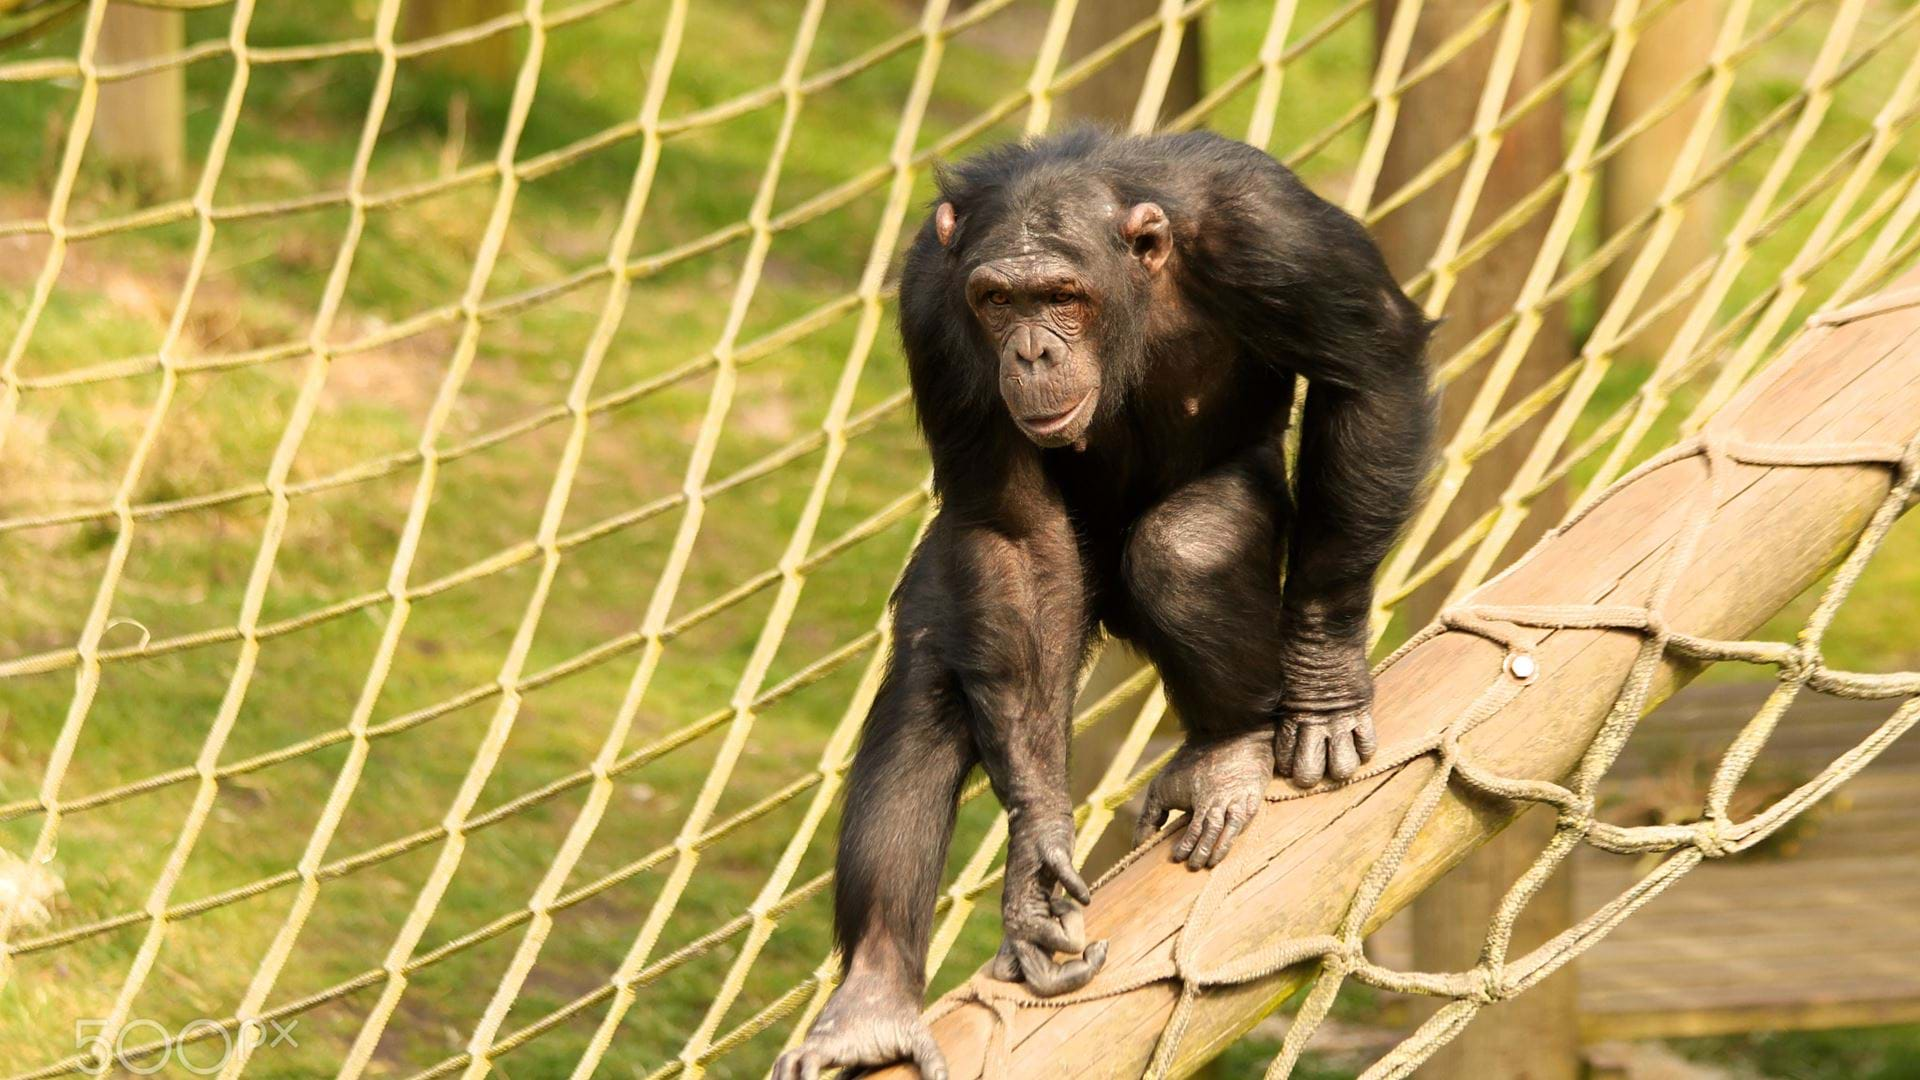 a-chimpanzee-climbs-the-ropes-at-monkey-world-dorset